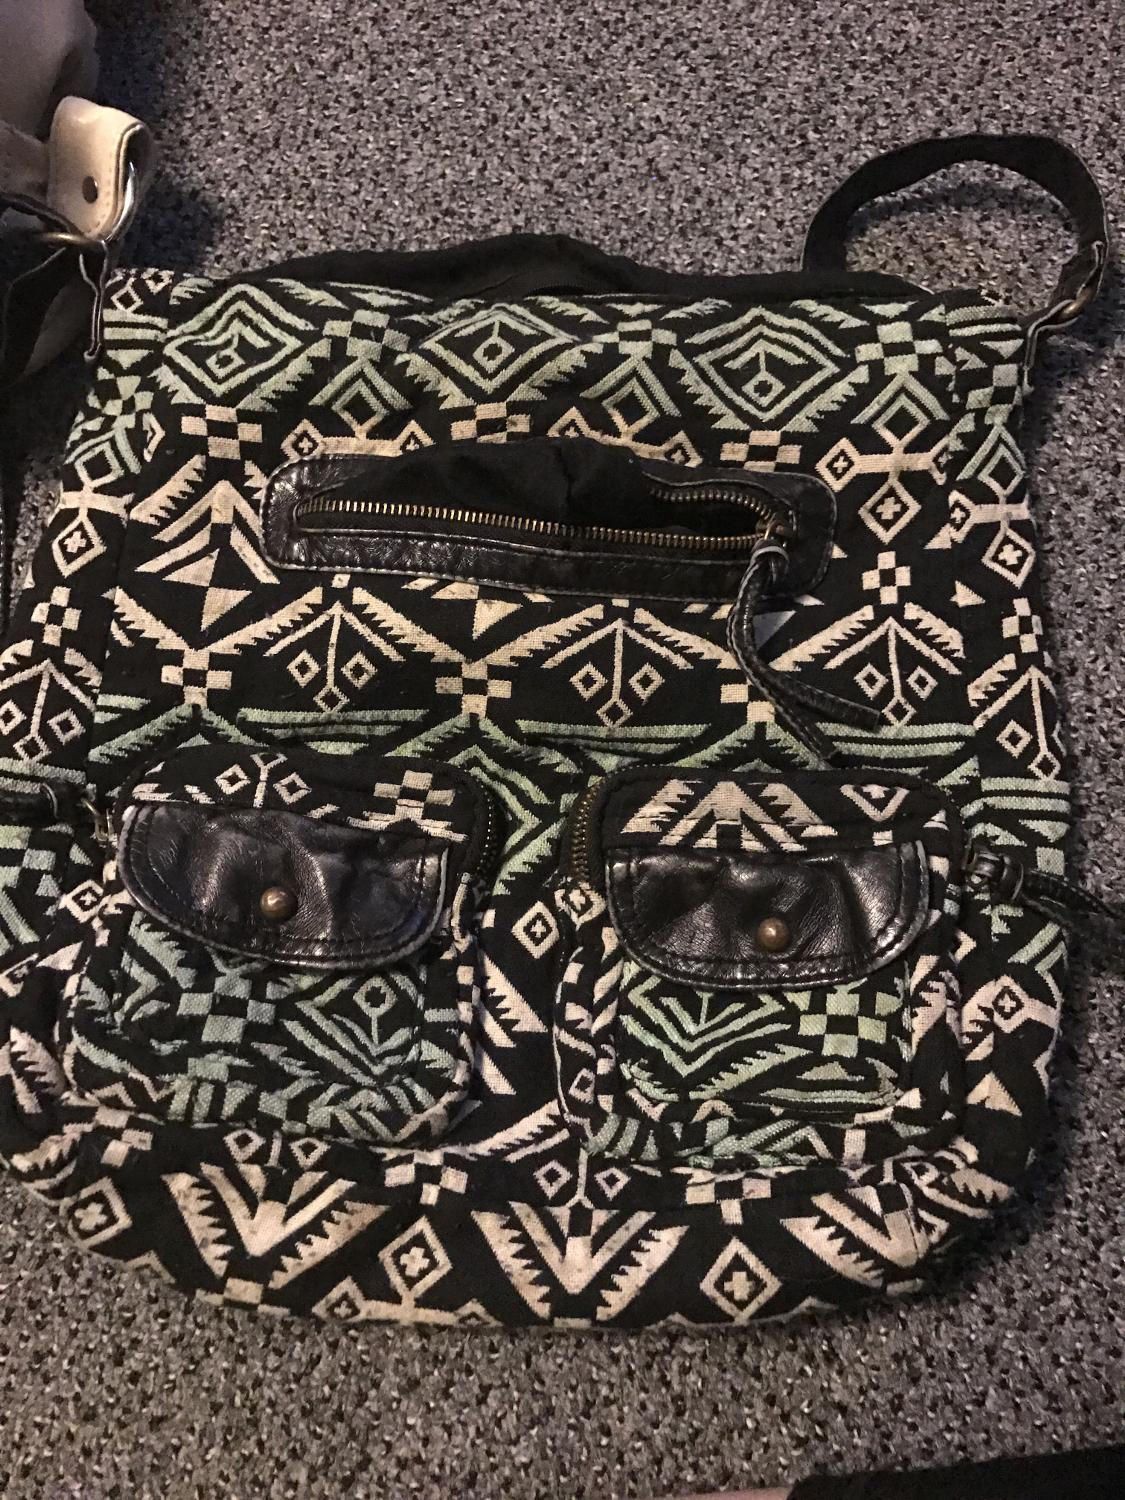 Best Cross Body Purse For Sale In Minot North Dakota For 2018